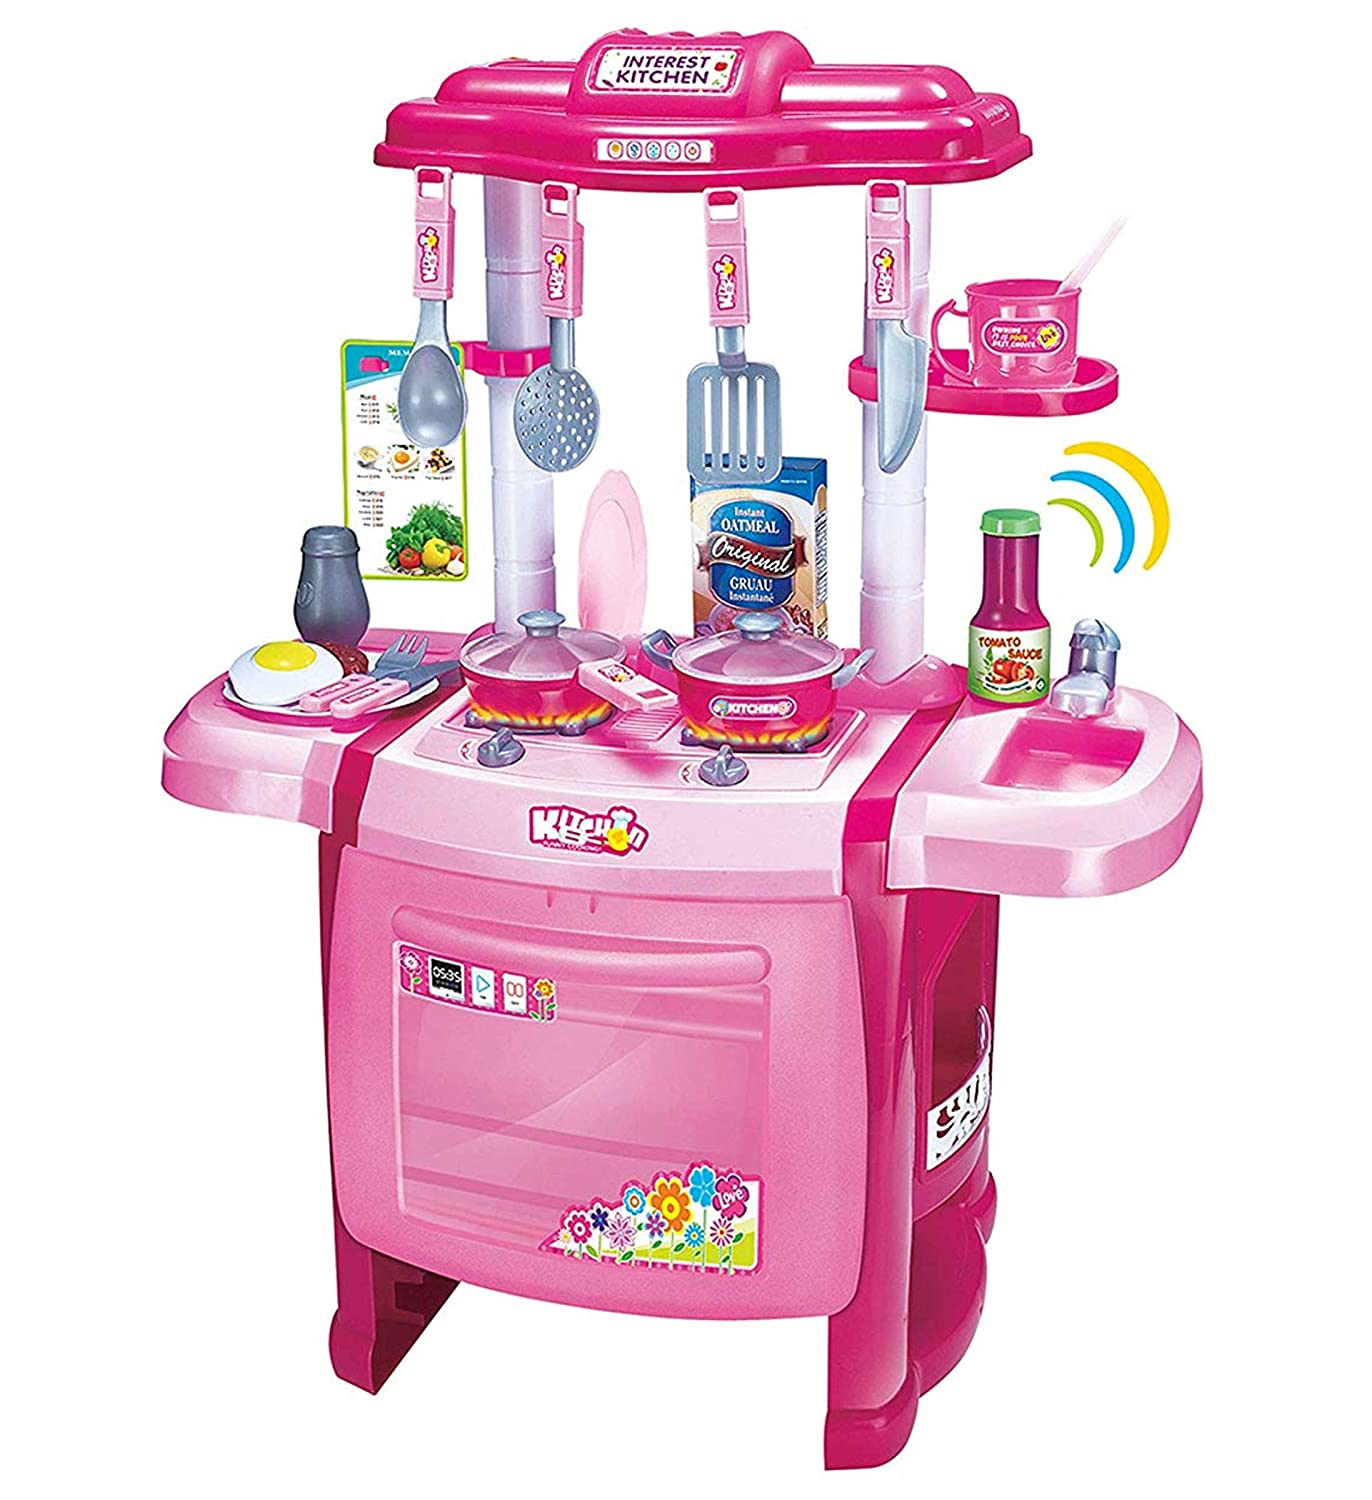 """Mozlly Jumbo Cook Electronic Complete Kitchen Playset, 24.5"""" Toddler Cooking Toys Kids Oven Sink Stovetop Cookware Pretend Play Lights & Sound Effects, Colors May Vary"""